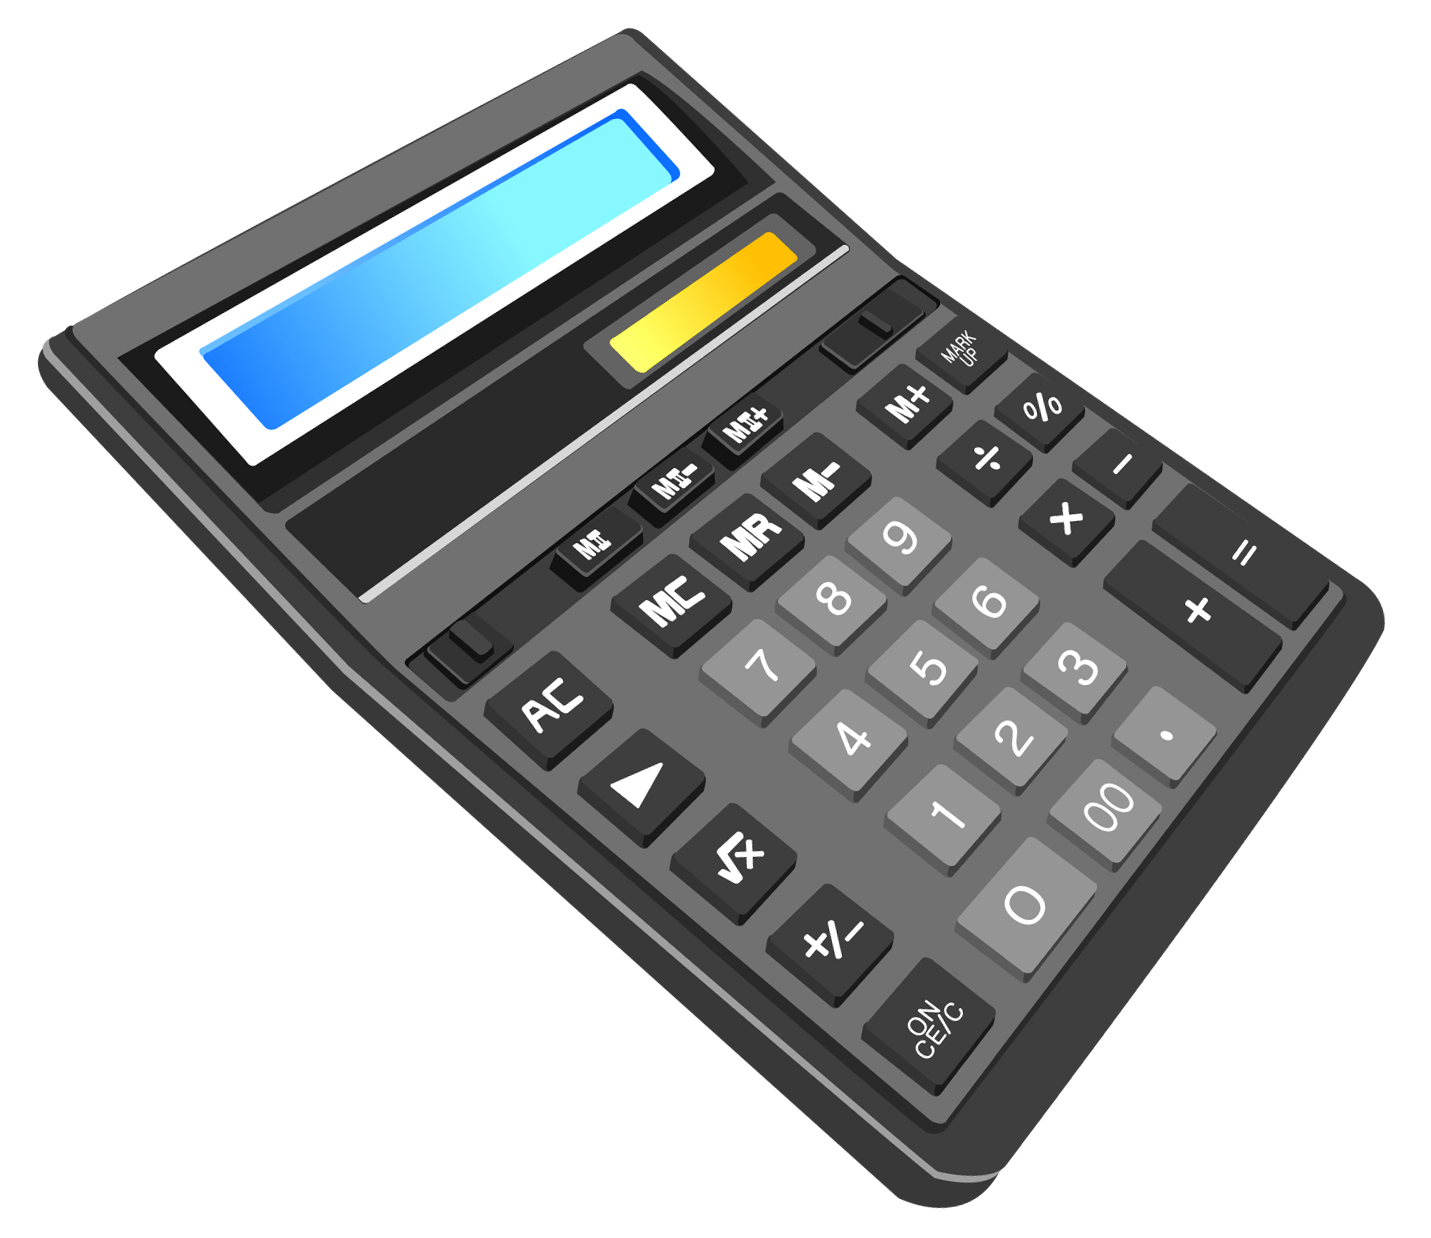 Money and calculator clipart svg 28+ Collection of Calculator Clipart Png | High quality, free ... svg